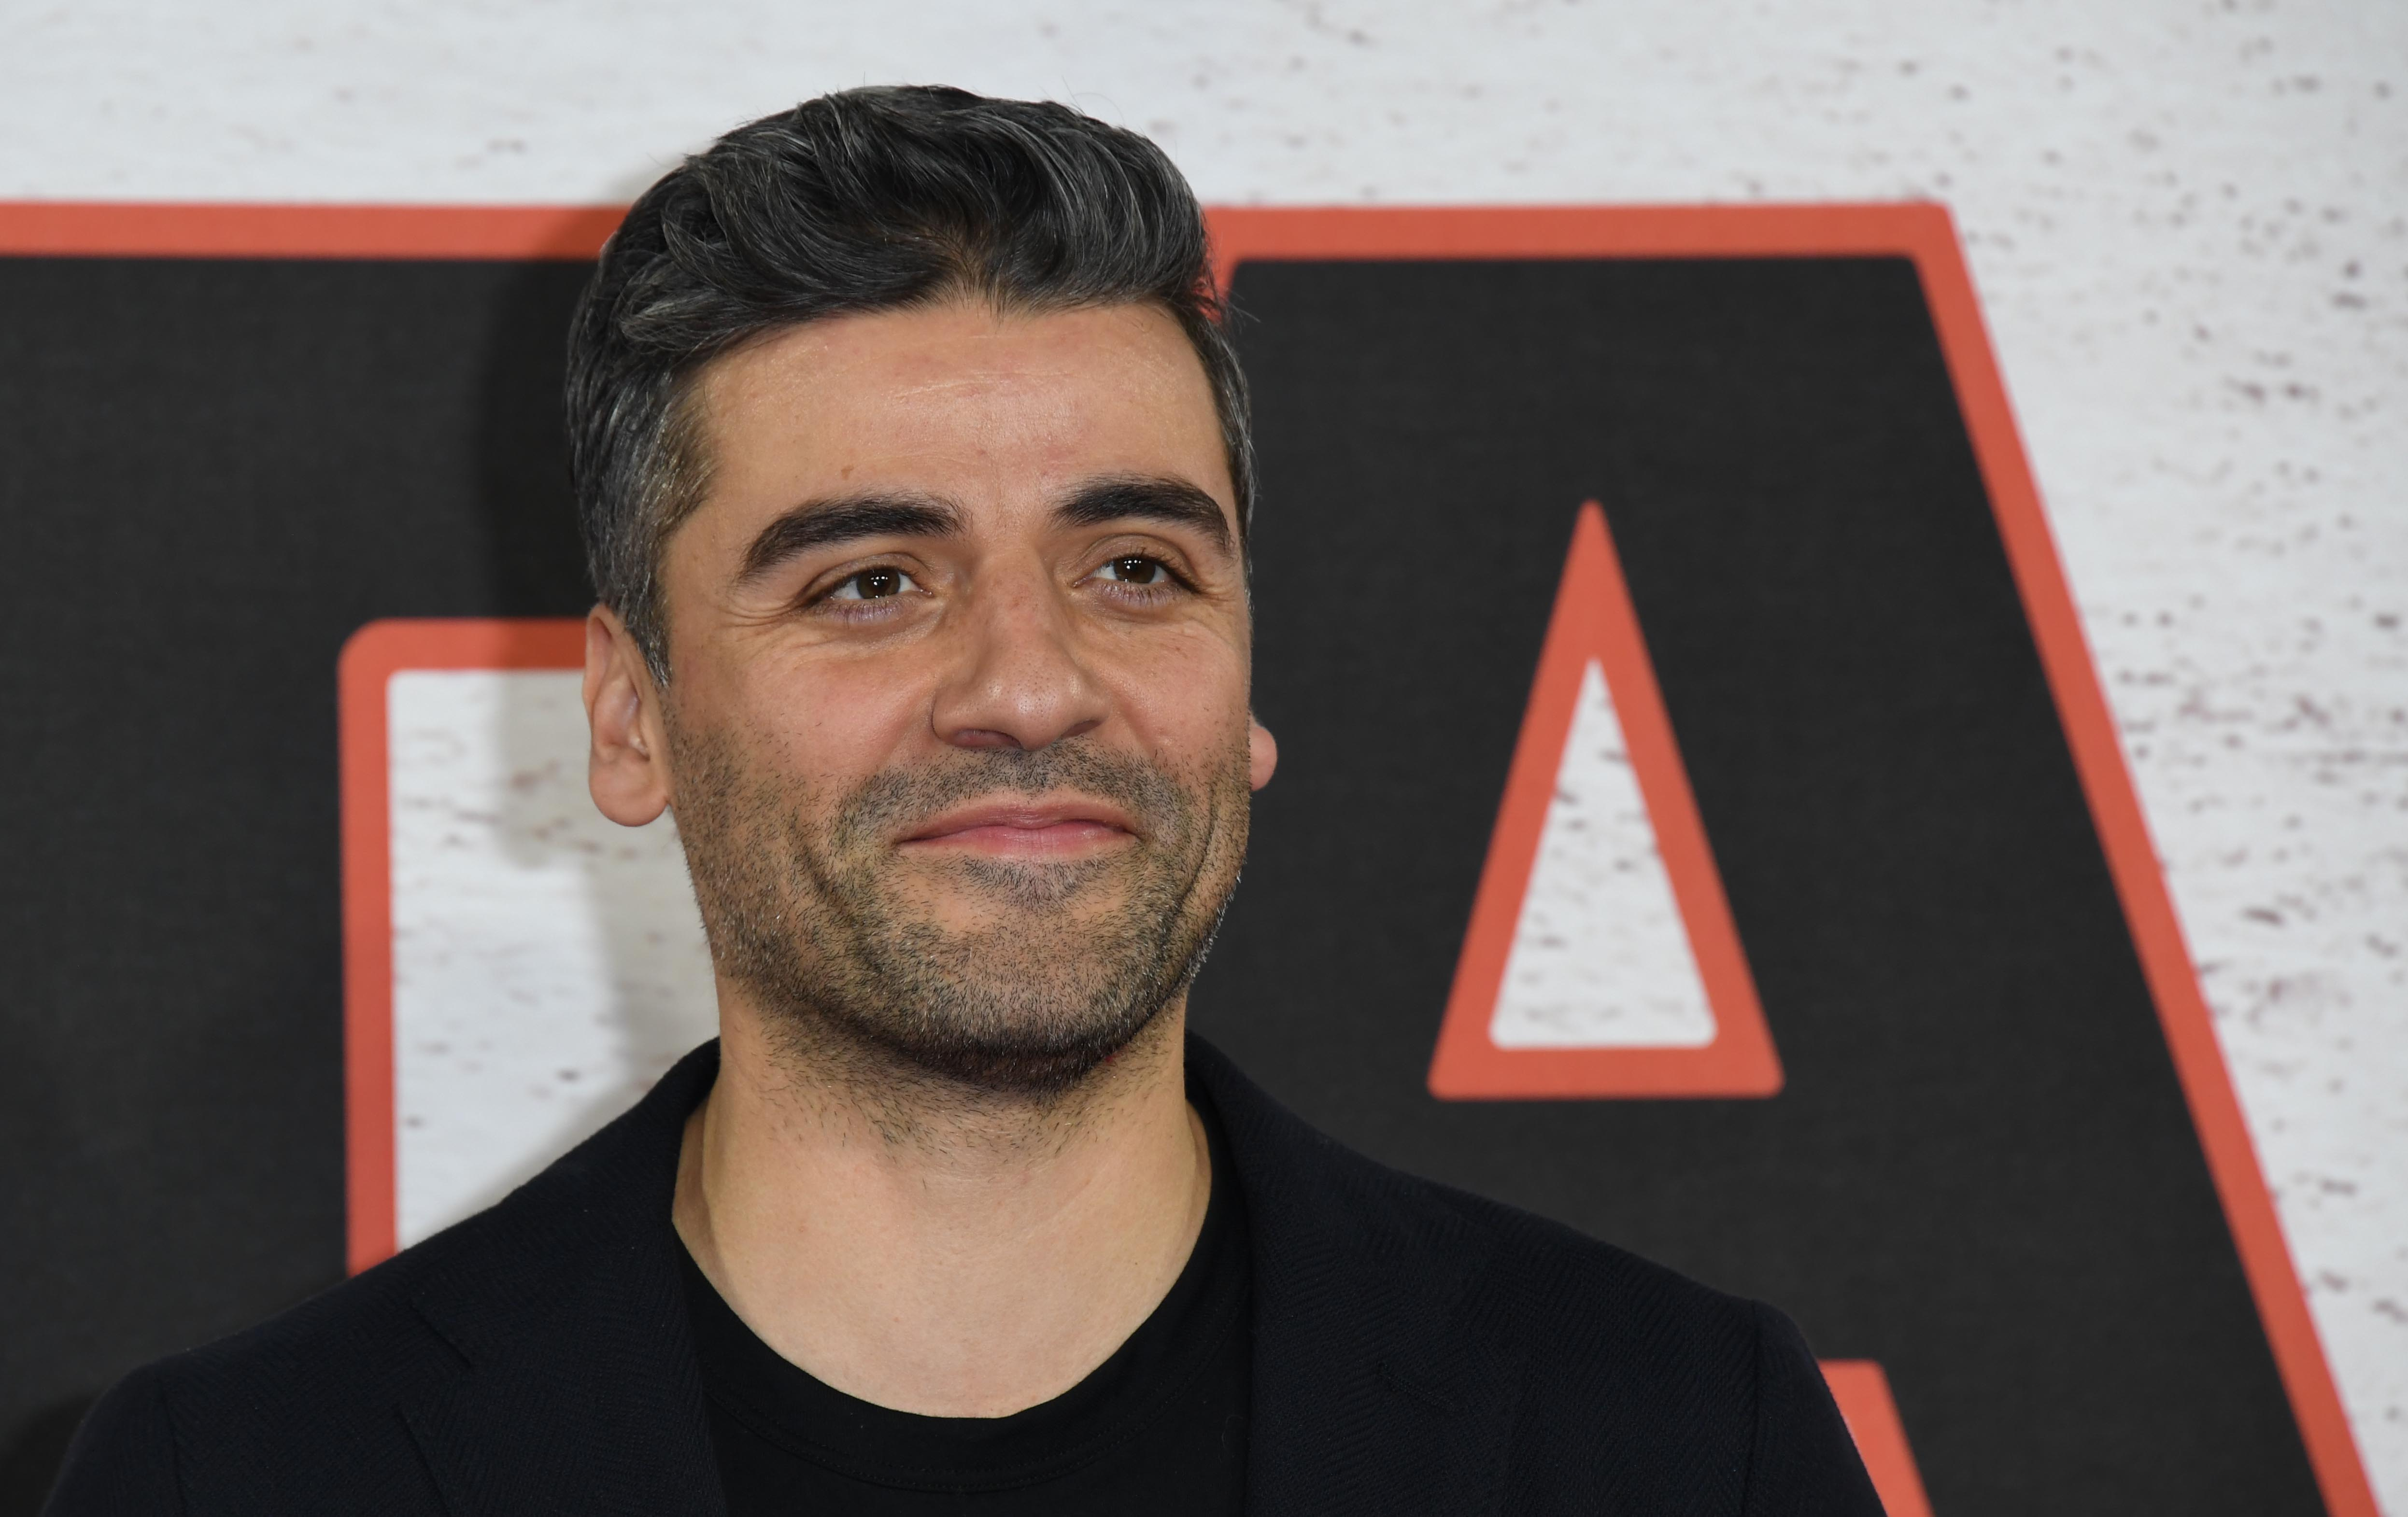 Oscar Isaac On Filming 'Star Wars: The Last Jedi' and 'Annihilation' at the Same Time